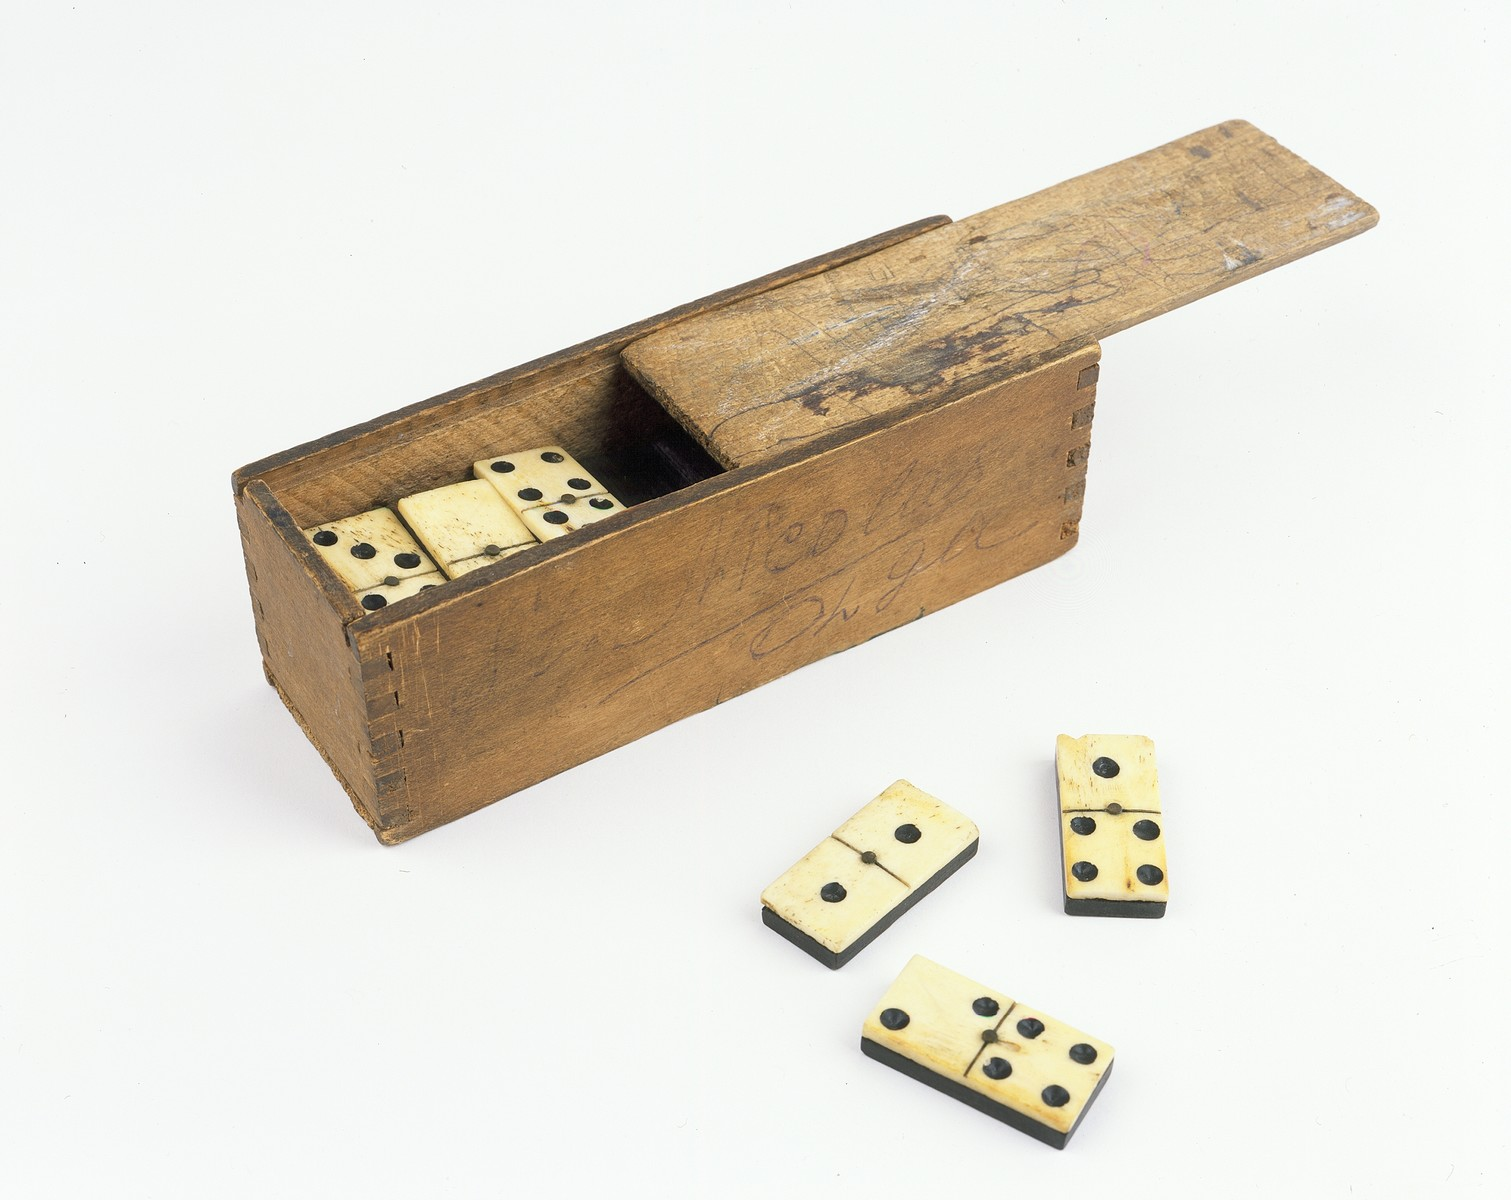 A wooden box of dominoes given to Olga Kirschenbaum as a St. Nicholas Day gift while she was in hiding.